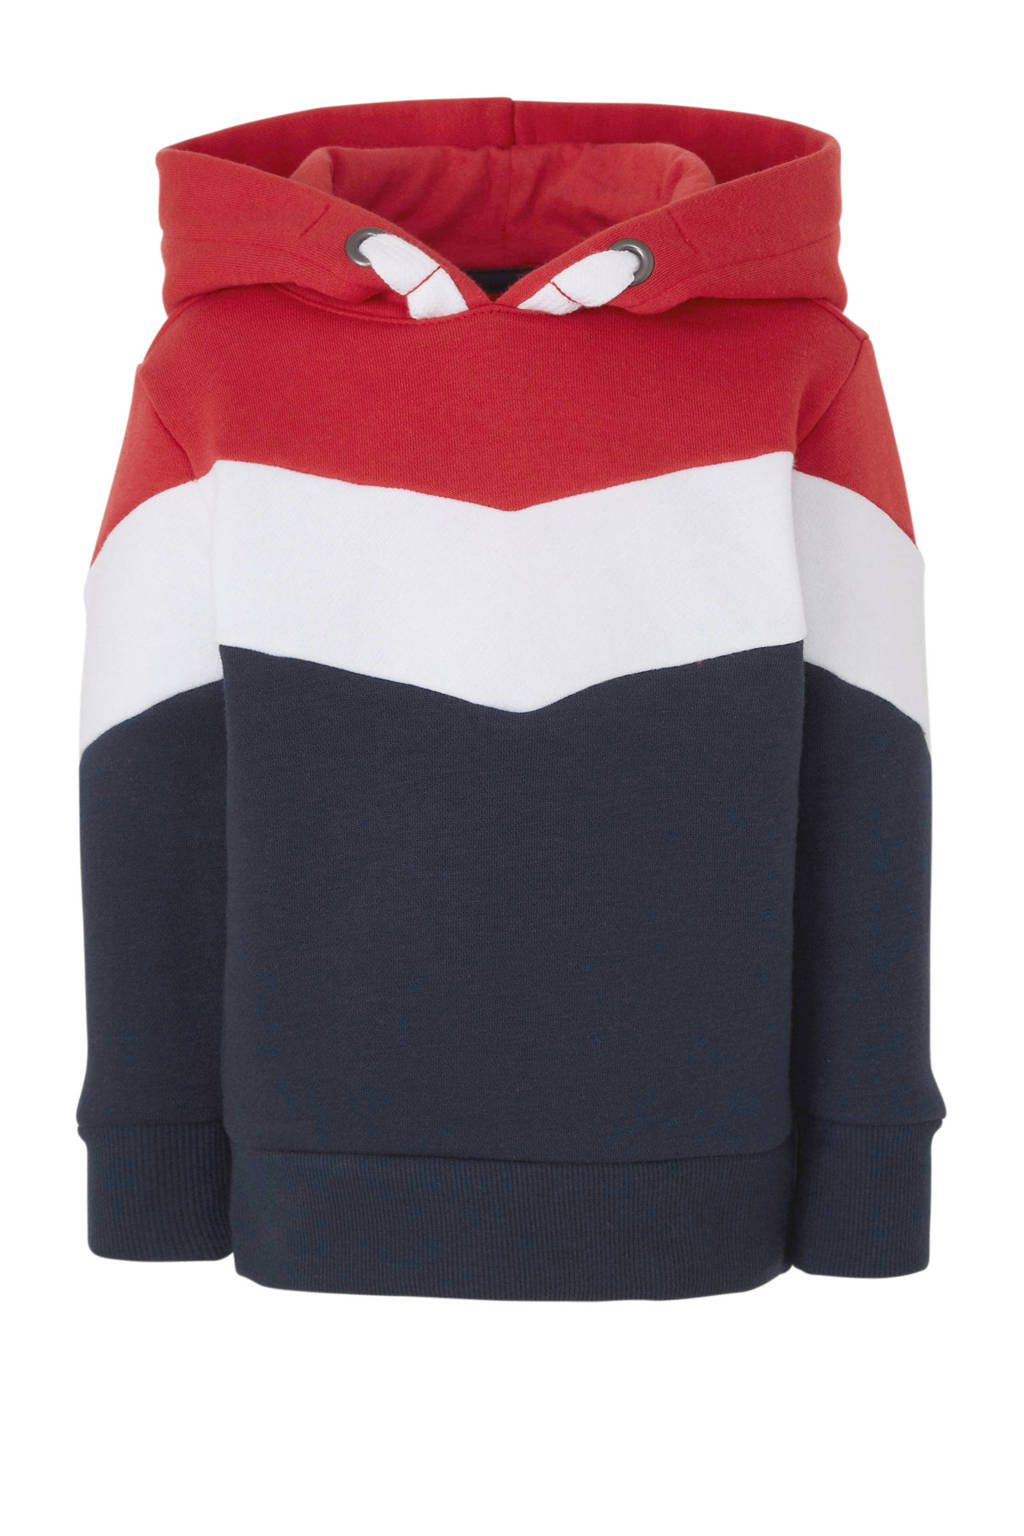 C&A Palomino hoodie donkerblauw/wit/rood, Donkerblauw/wit/rood